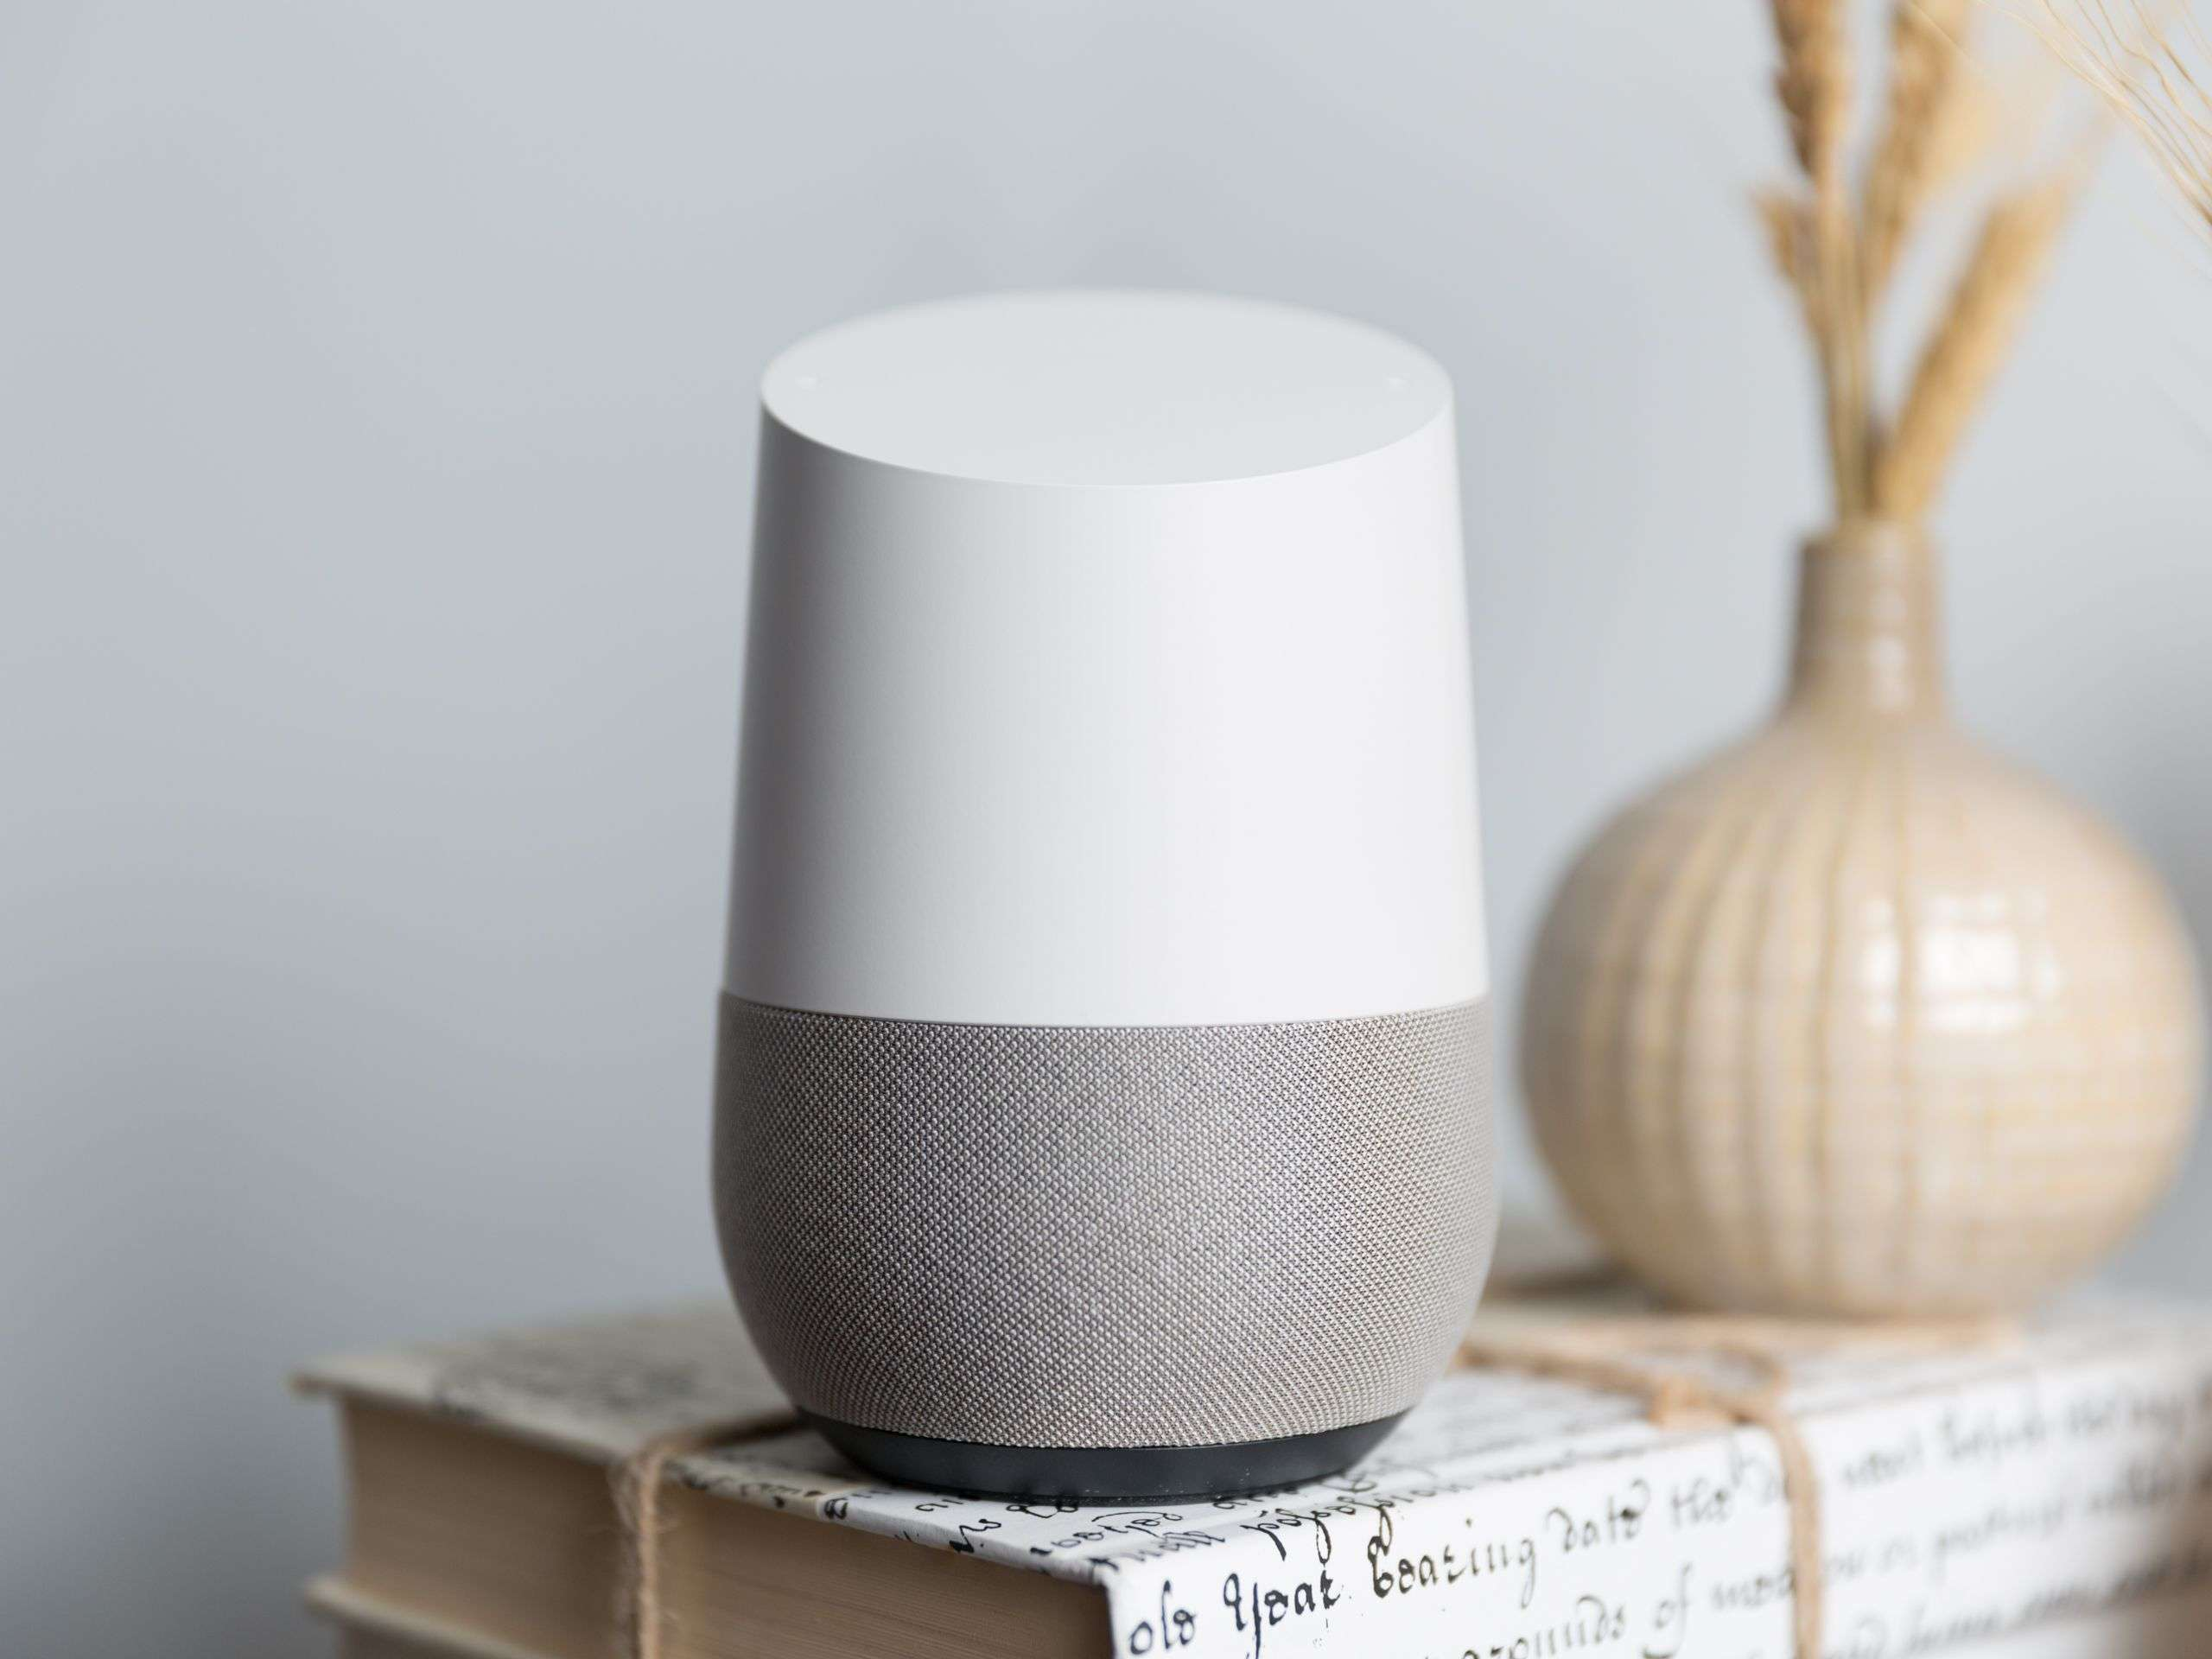 regalo tecnologico - GOOGLE HOME